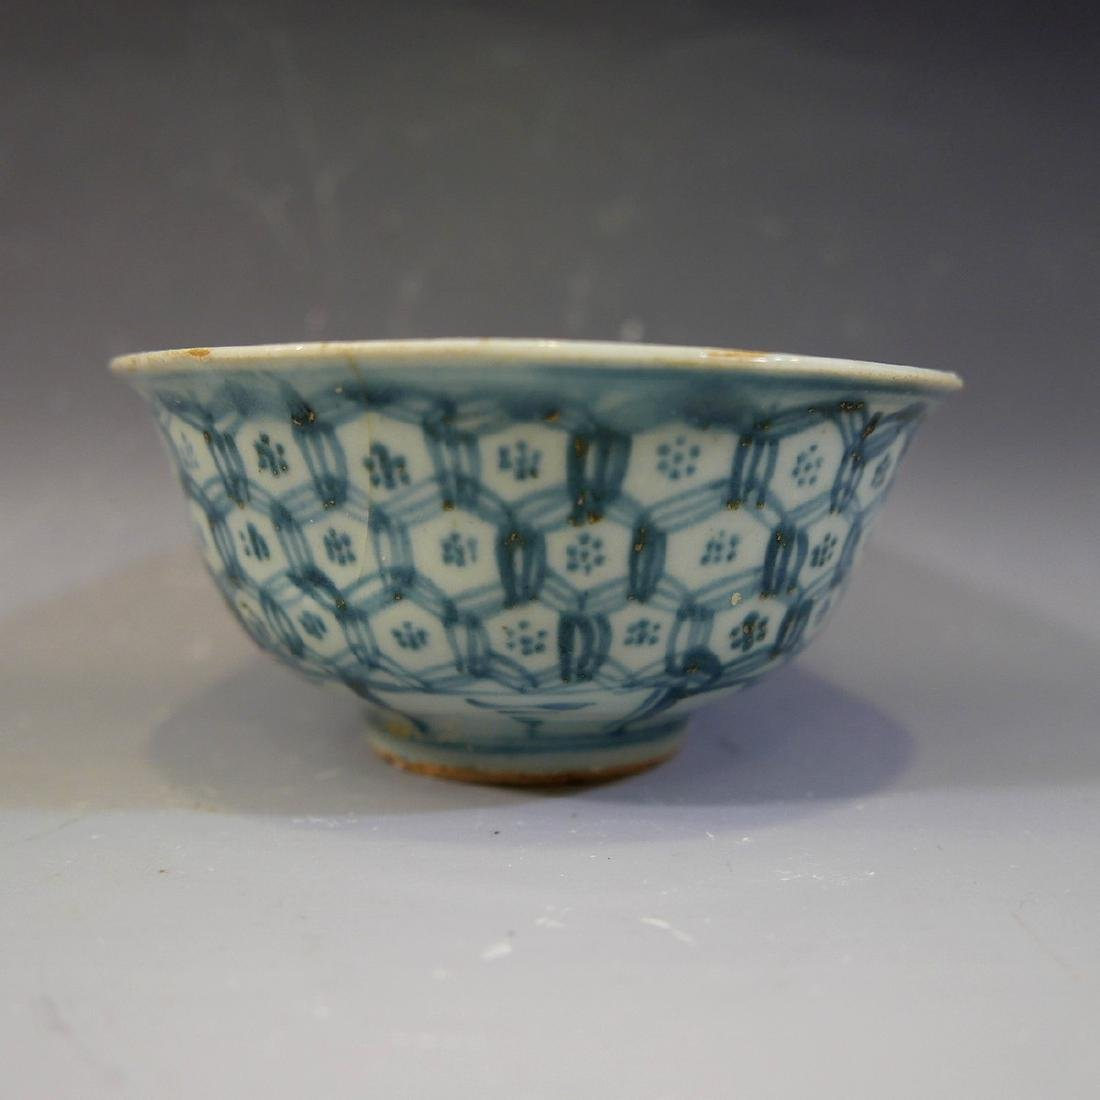 ANTIQUE CHINESE BLUE WHITE PORCELAIN BOWL - MING